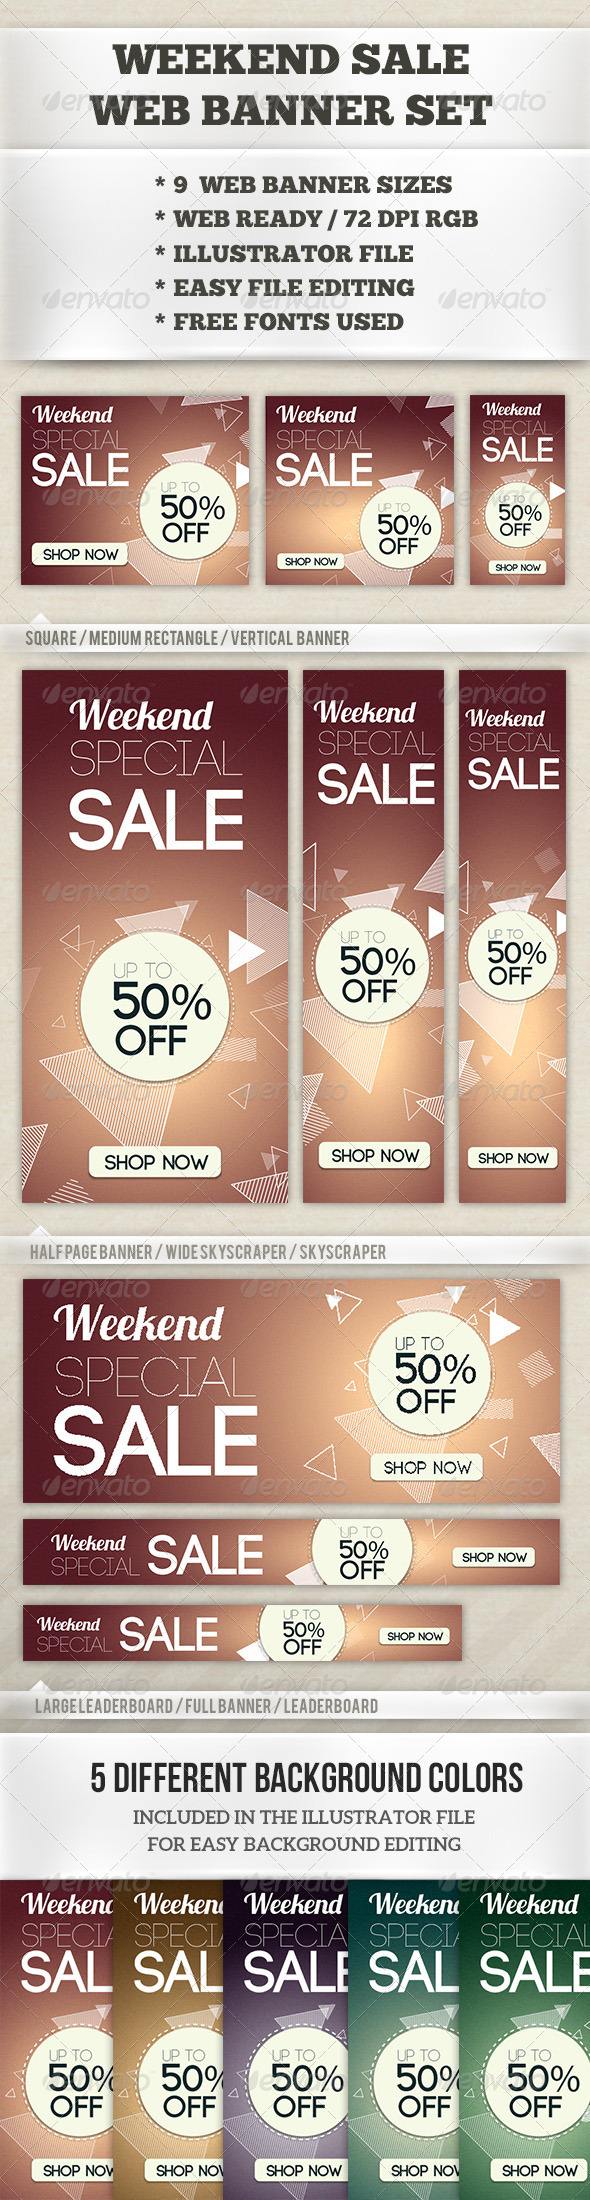 GraphicRiver Weekend Sale Web Banner Set 6835140